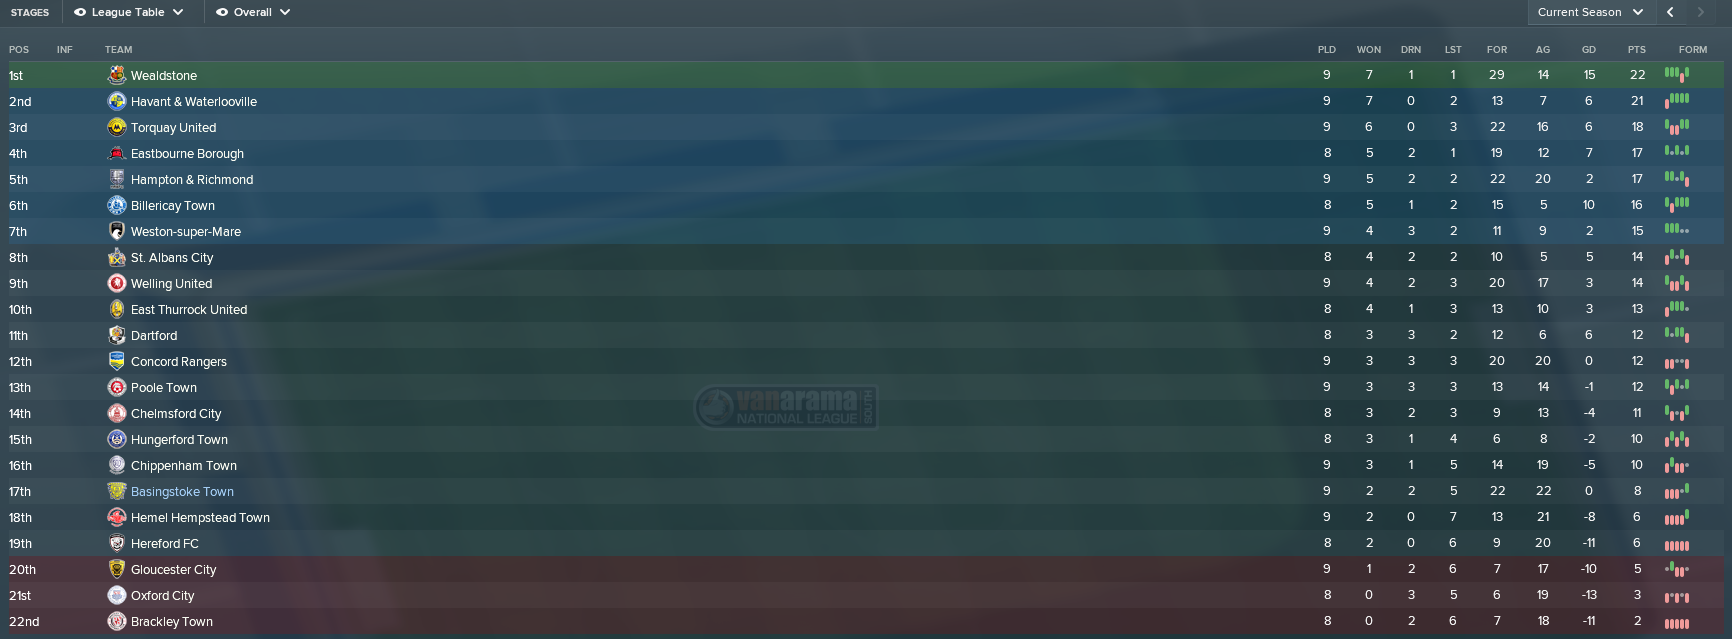 septmber_league_table.png